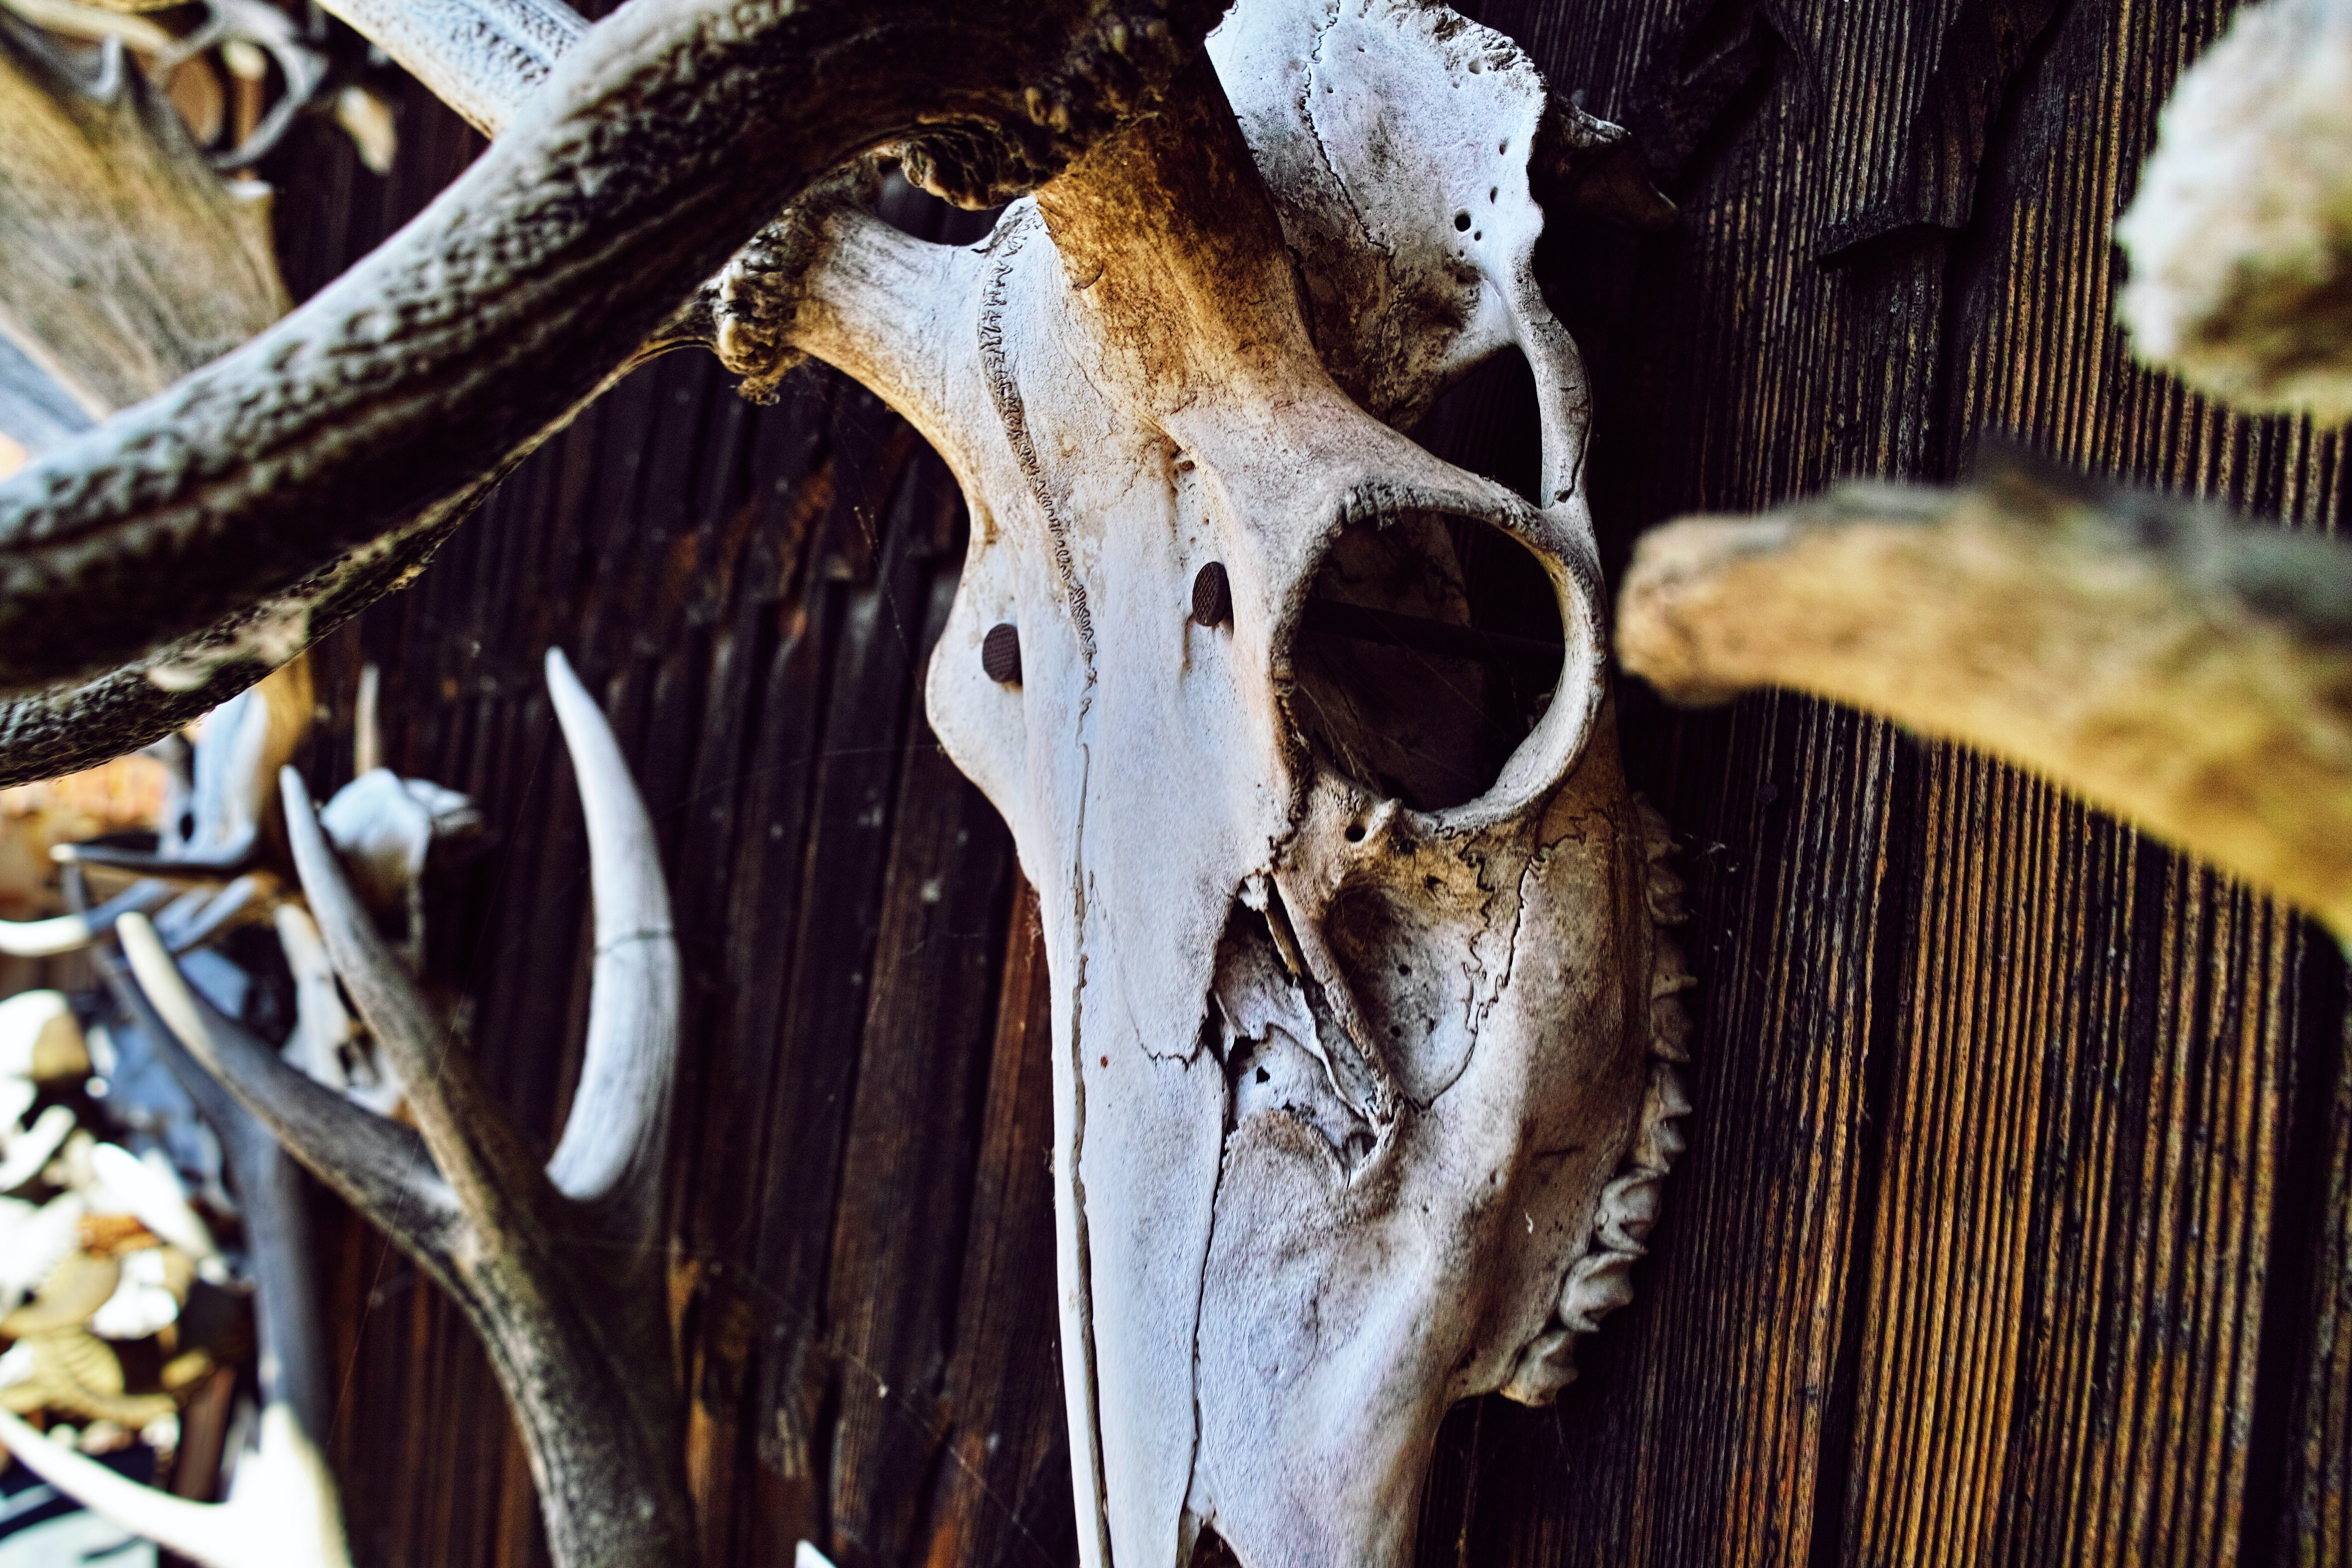 An animal skull with long antlers hanging on a wooden wall